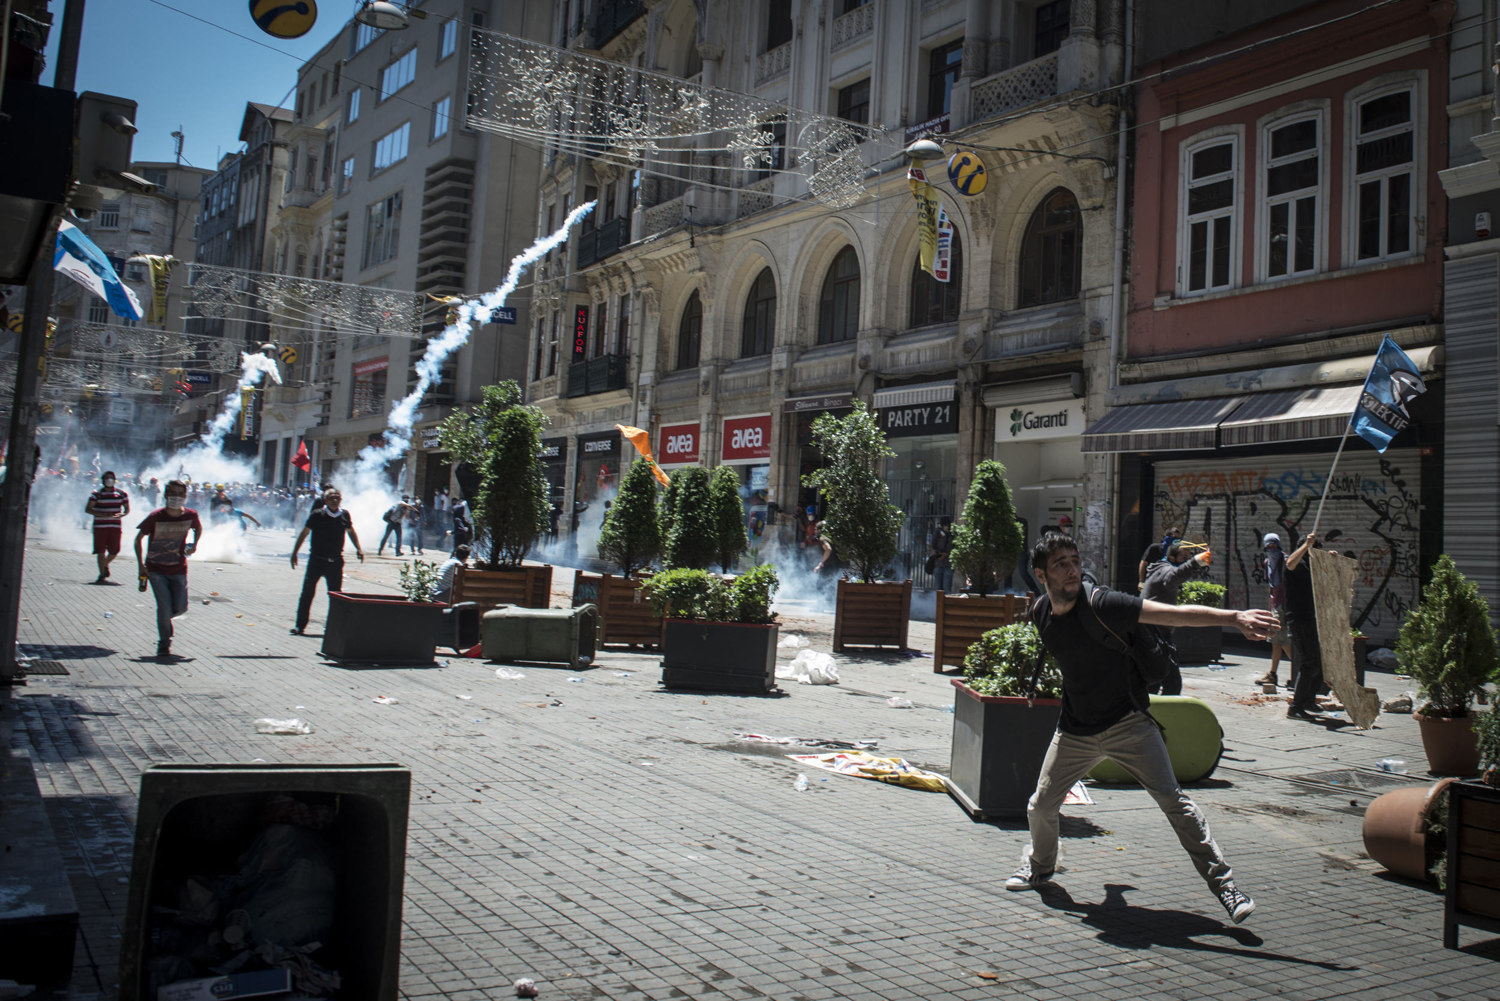 On one of the first days of the protest June 1 2013, demonstrators throw rocks and molotov cocktails at the police on the busy shopping street known as Istiklal Cadessi, in Istanbul Turkey.